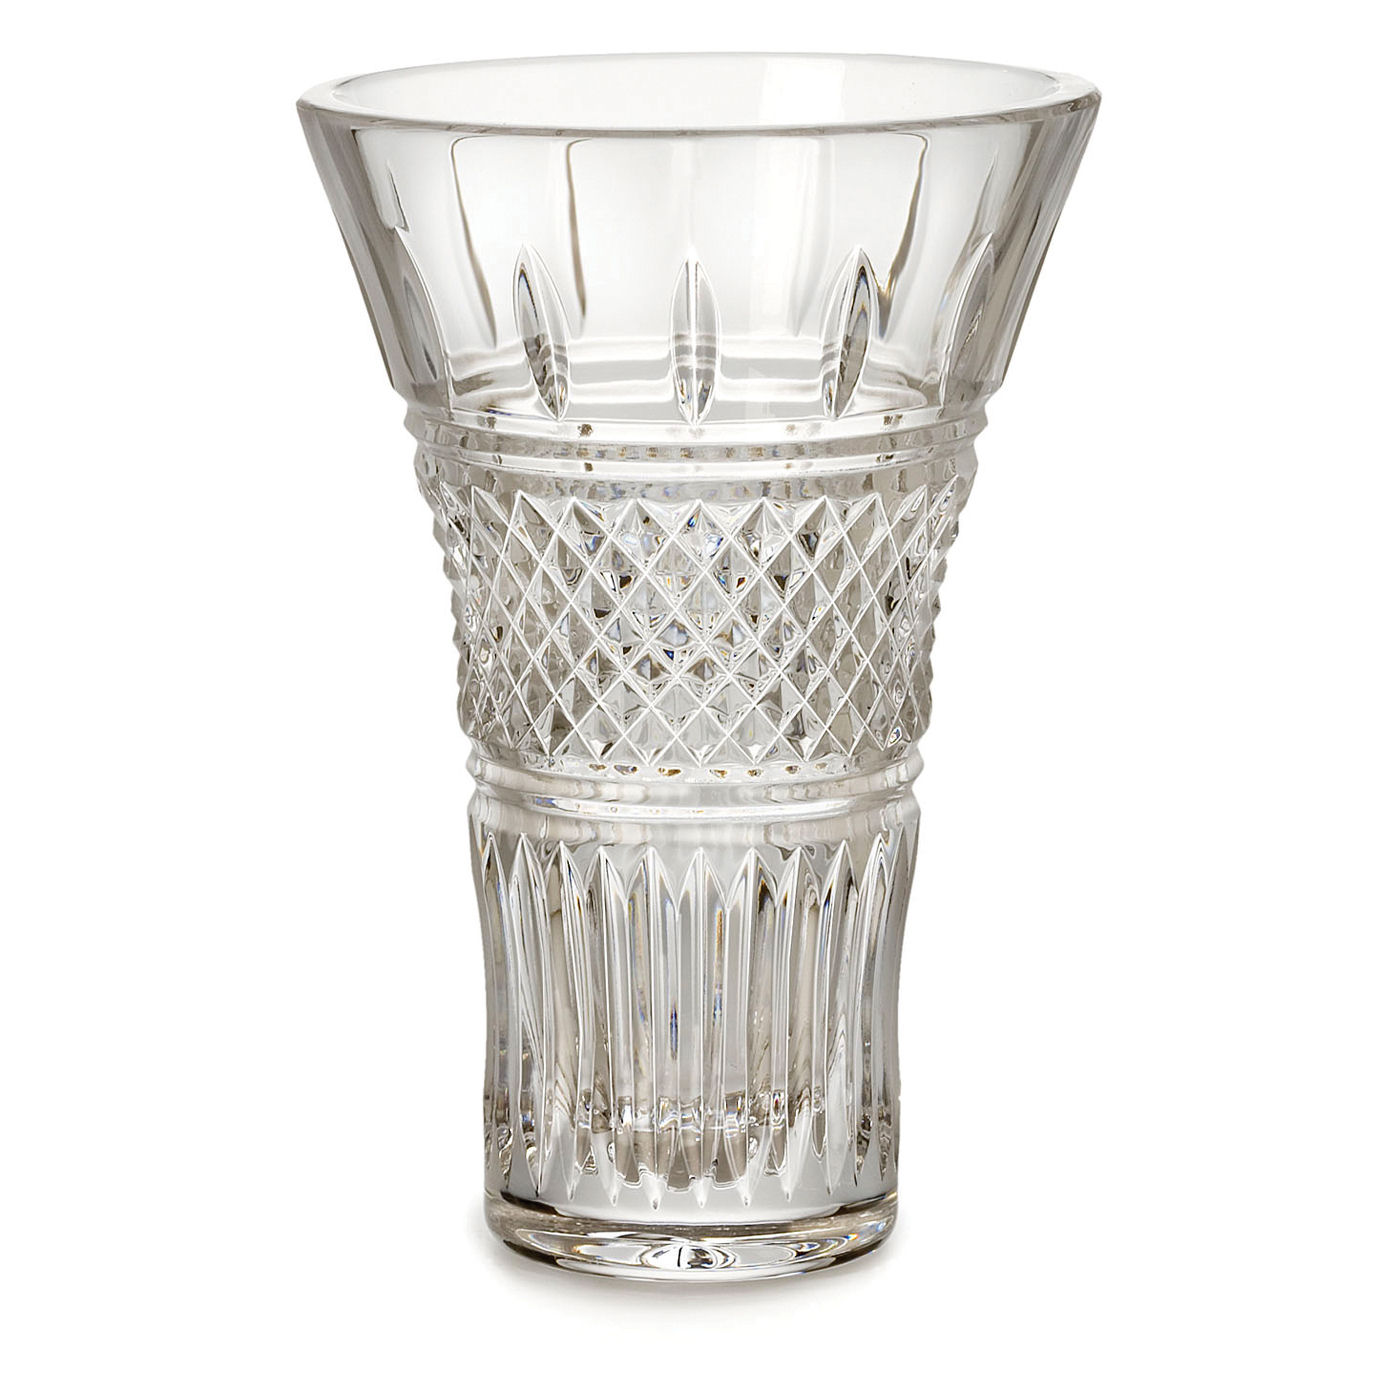 Fantastic Waterford Crystal Patterns for Dining Ware Ideas: Best Waterford Crystal Patterns For Dining Sets Ideas With Waterford Crystal Glass Patterns